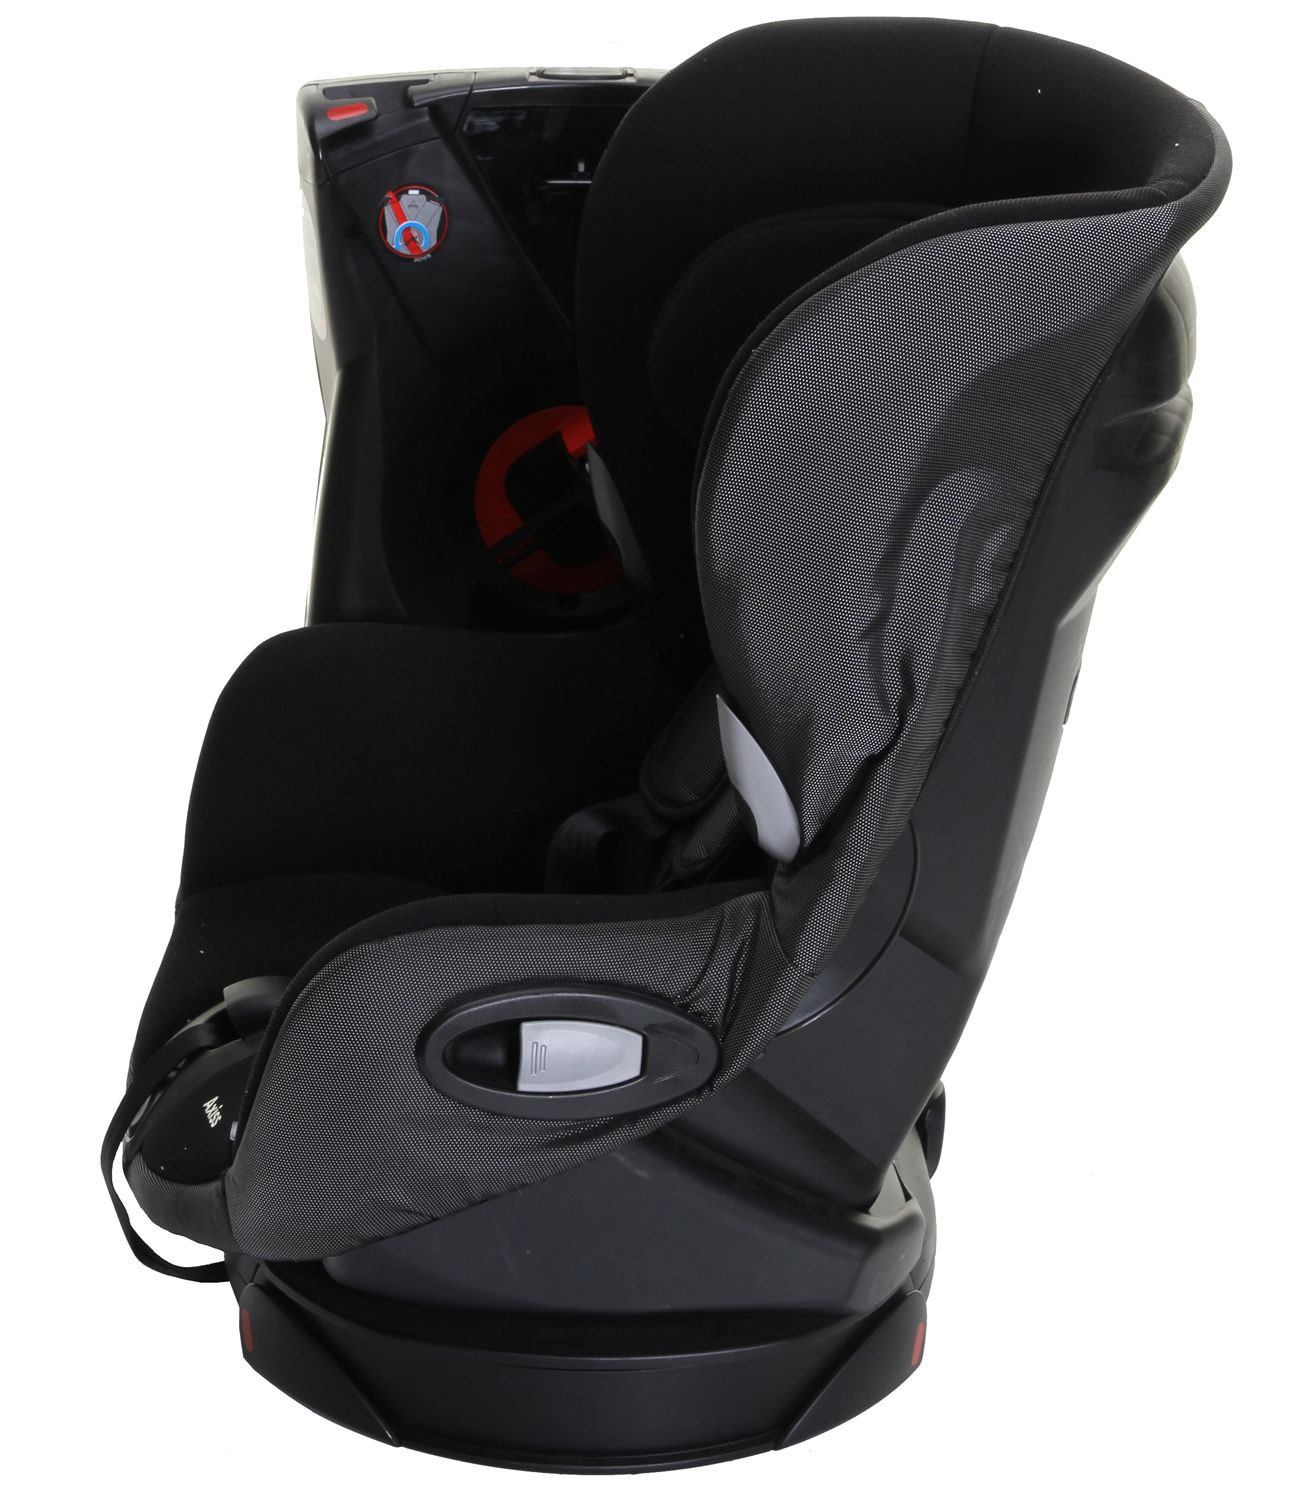 maxi cosi axiss car seat black reflection kiddicare. Black Bedroom Furniture Sets. Home Design Ideas